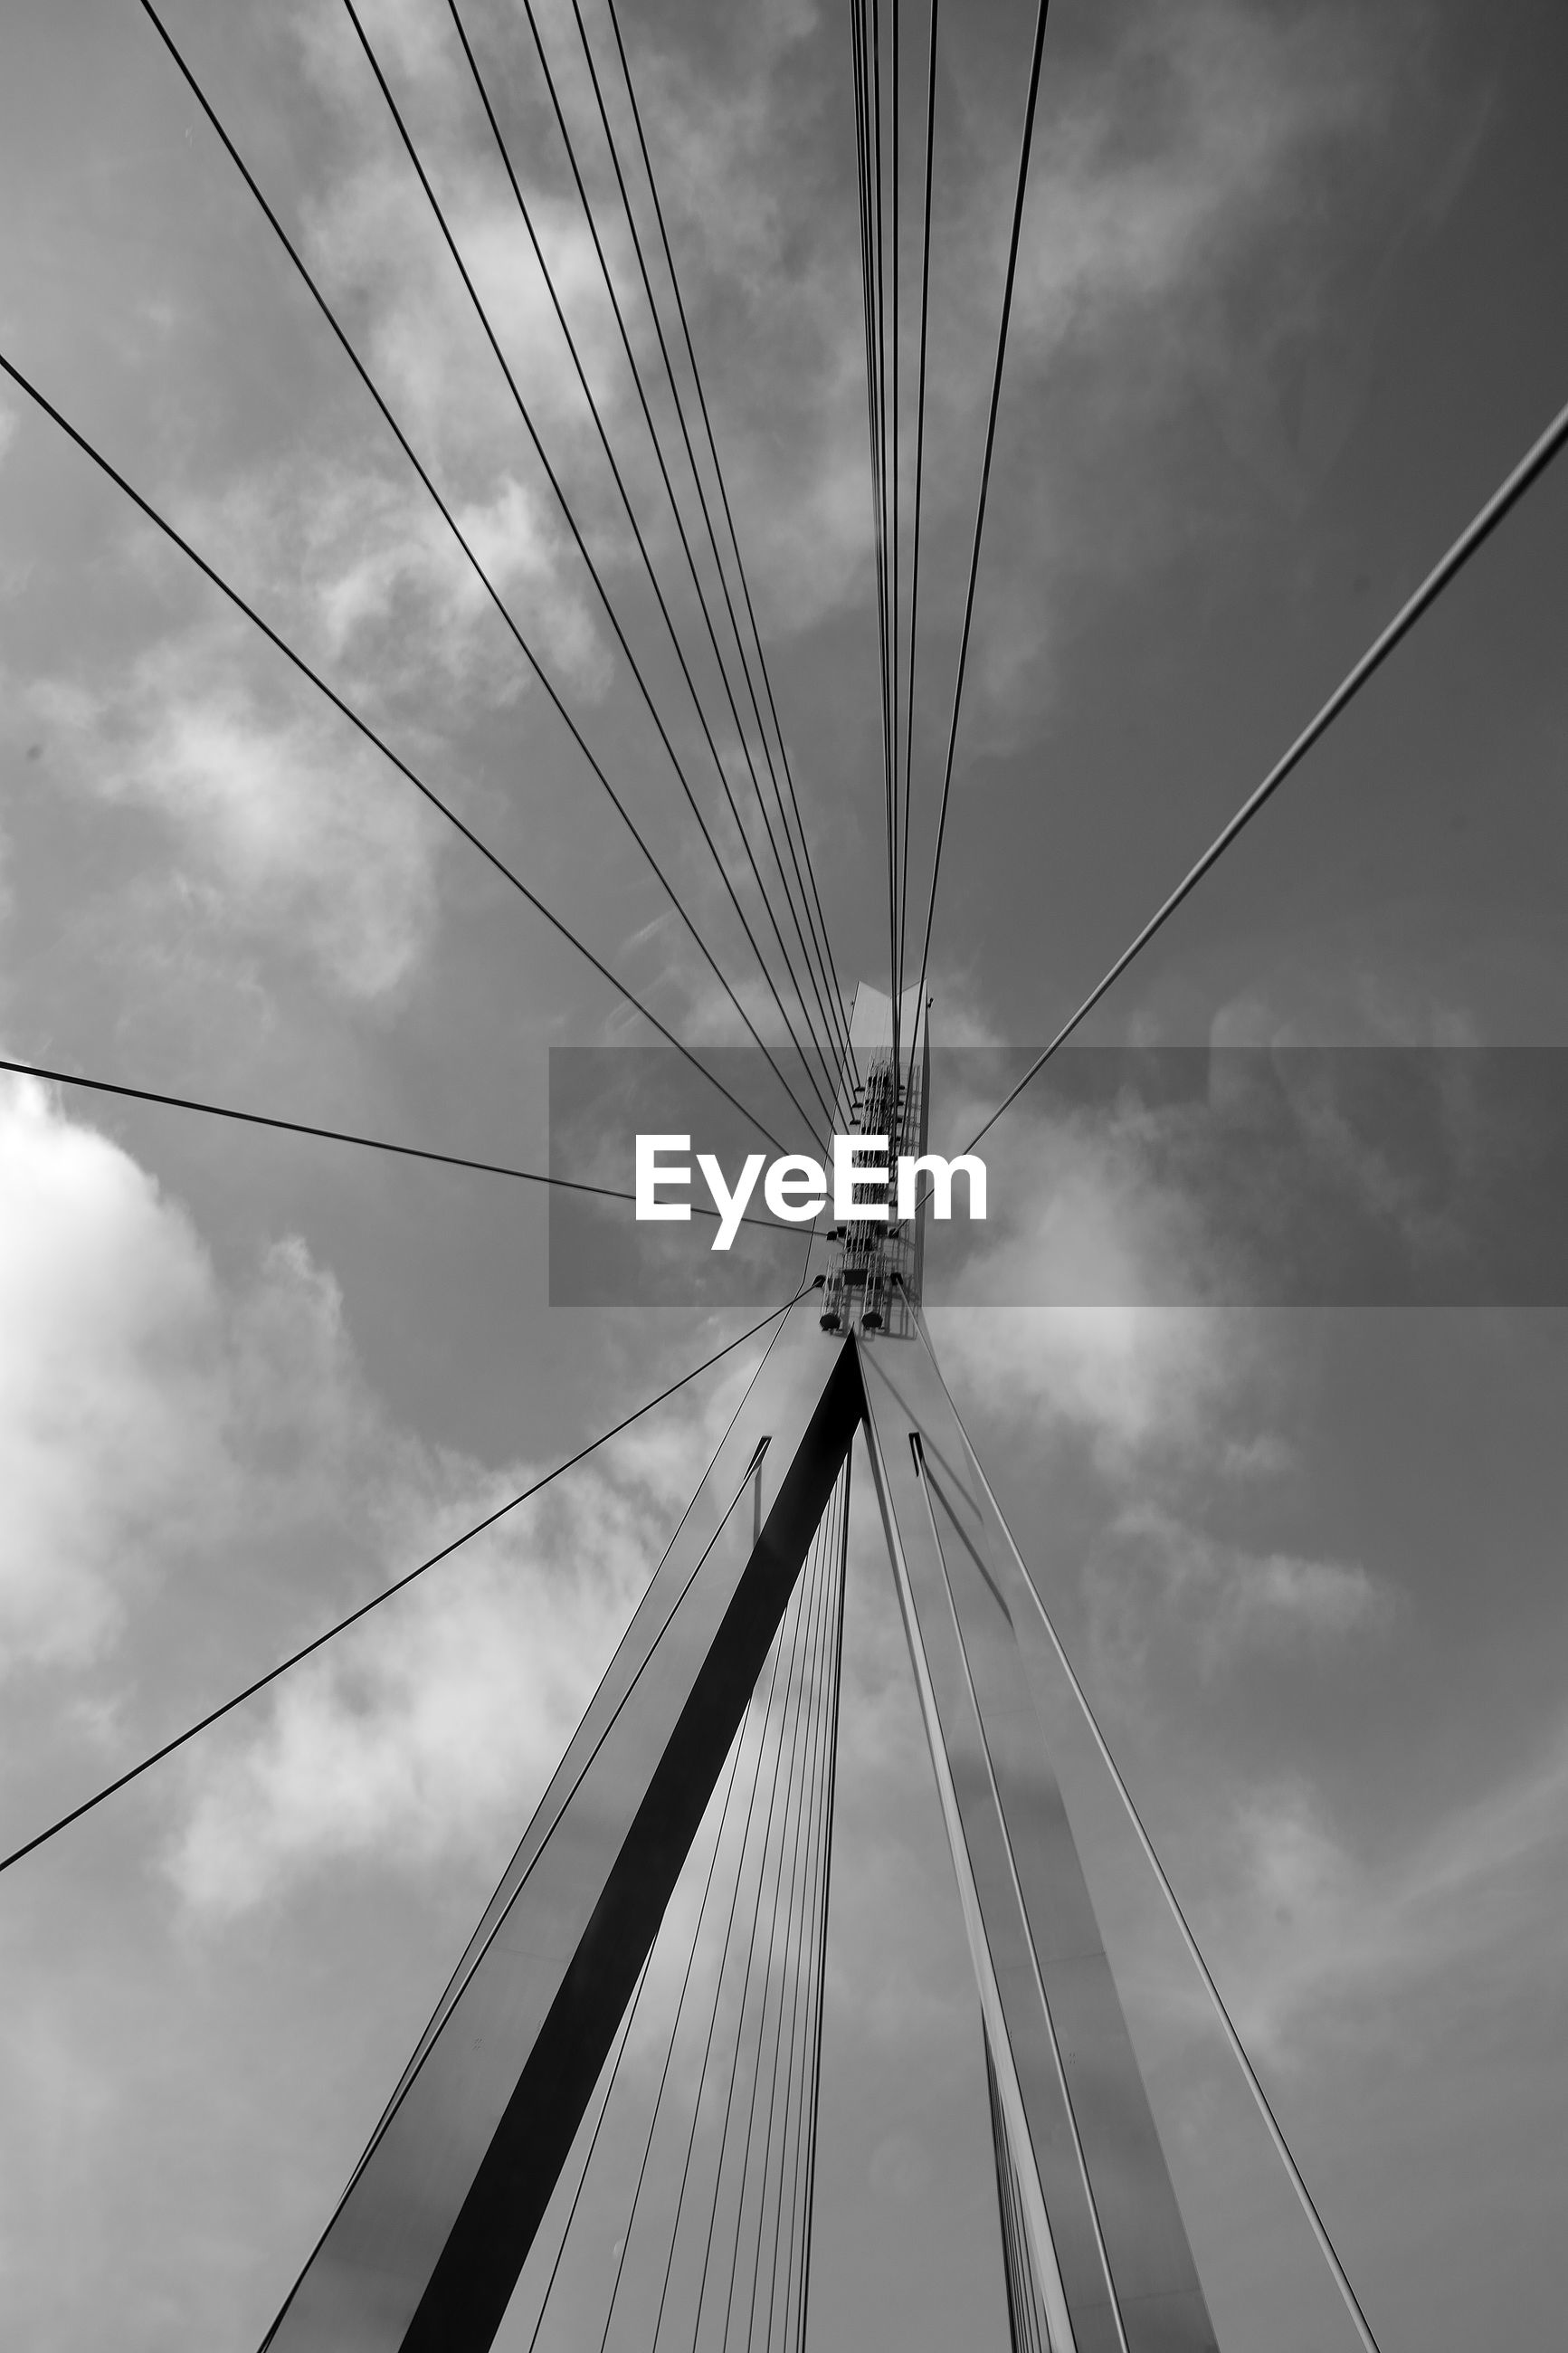 LOW ANGLE VIEW OF BRIDGE CABLES AGAINST CLOUDY SKY